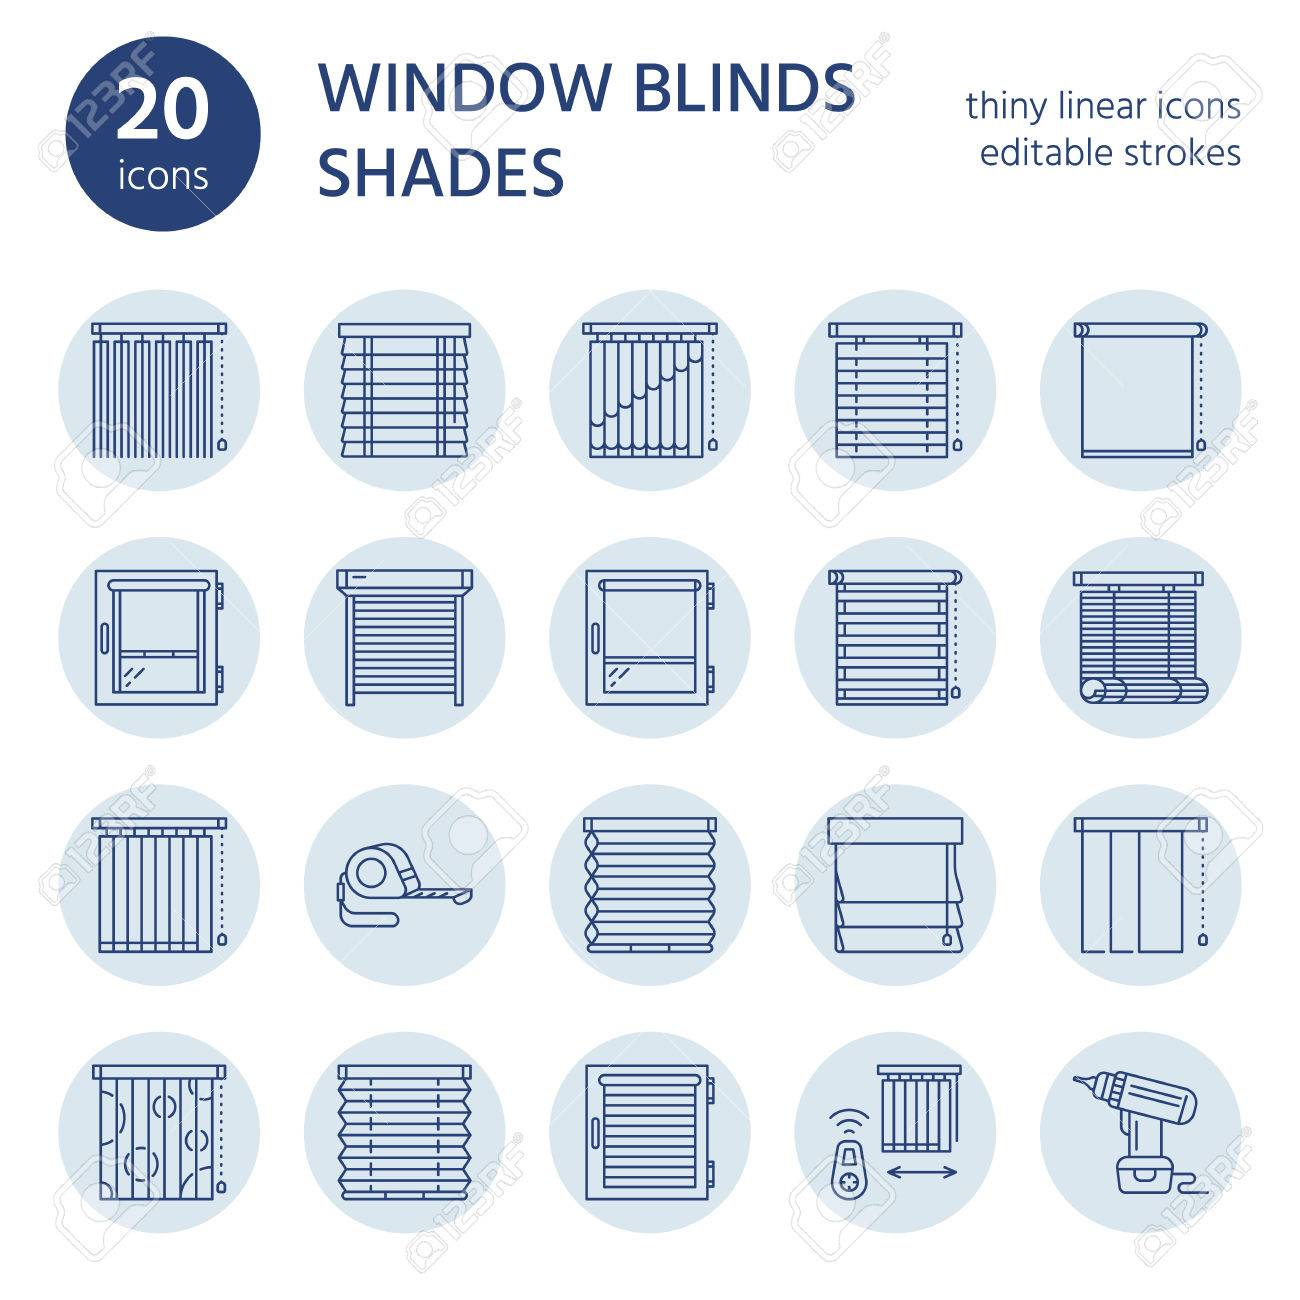 Window blinds, shades line icons. Various room darkening decoration, roller shutters, roman curtains, horizontal and vertical jalousie. Interior design thin linear signs for house decor shop. - 76428898